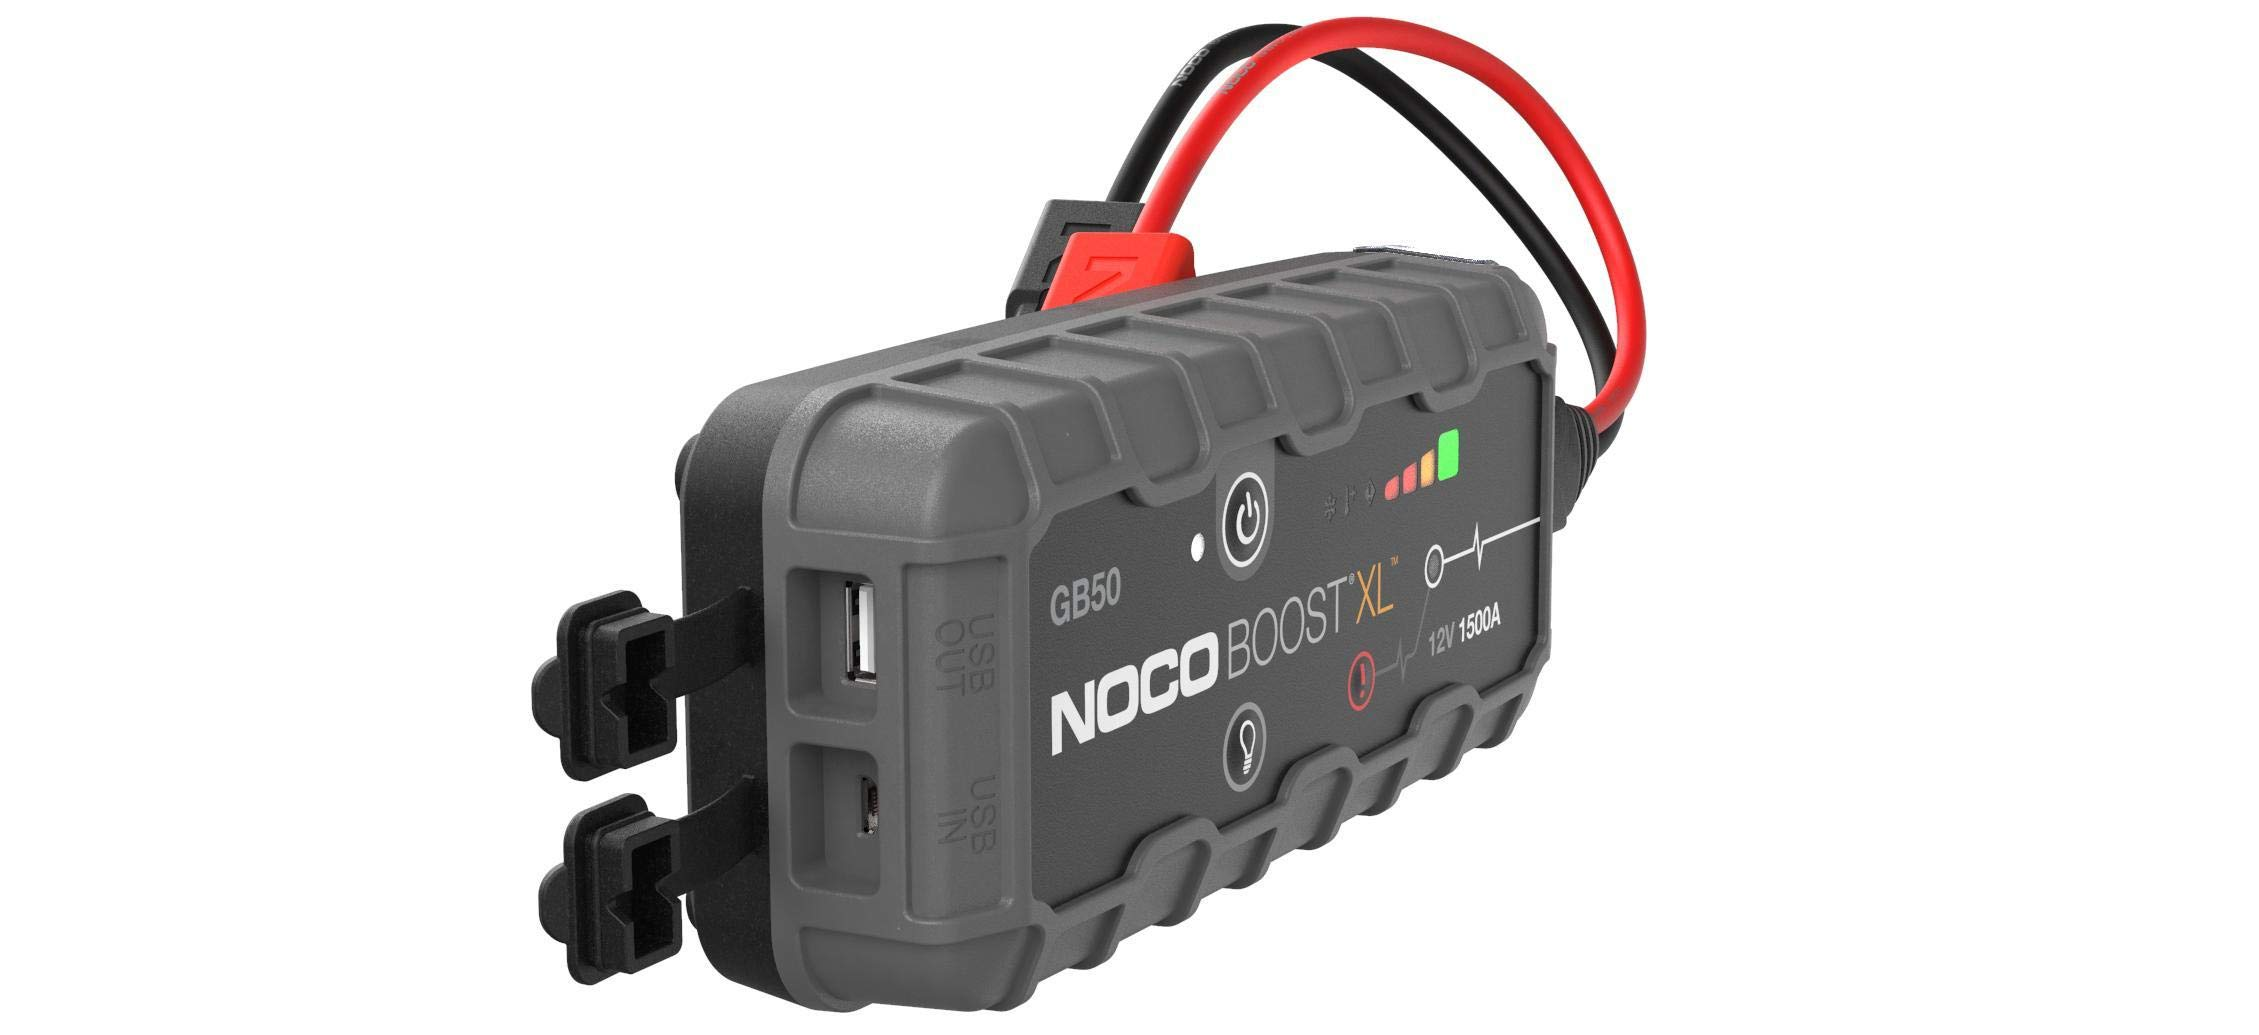 NOCO Boost XL GB50 1500 Amp 12V UltraSafe Lithium Jump Starter by NOCO (Image #10)